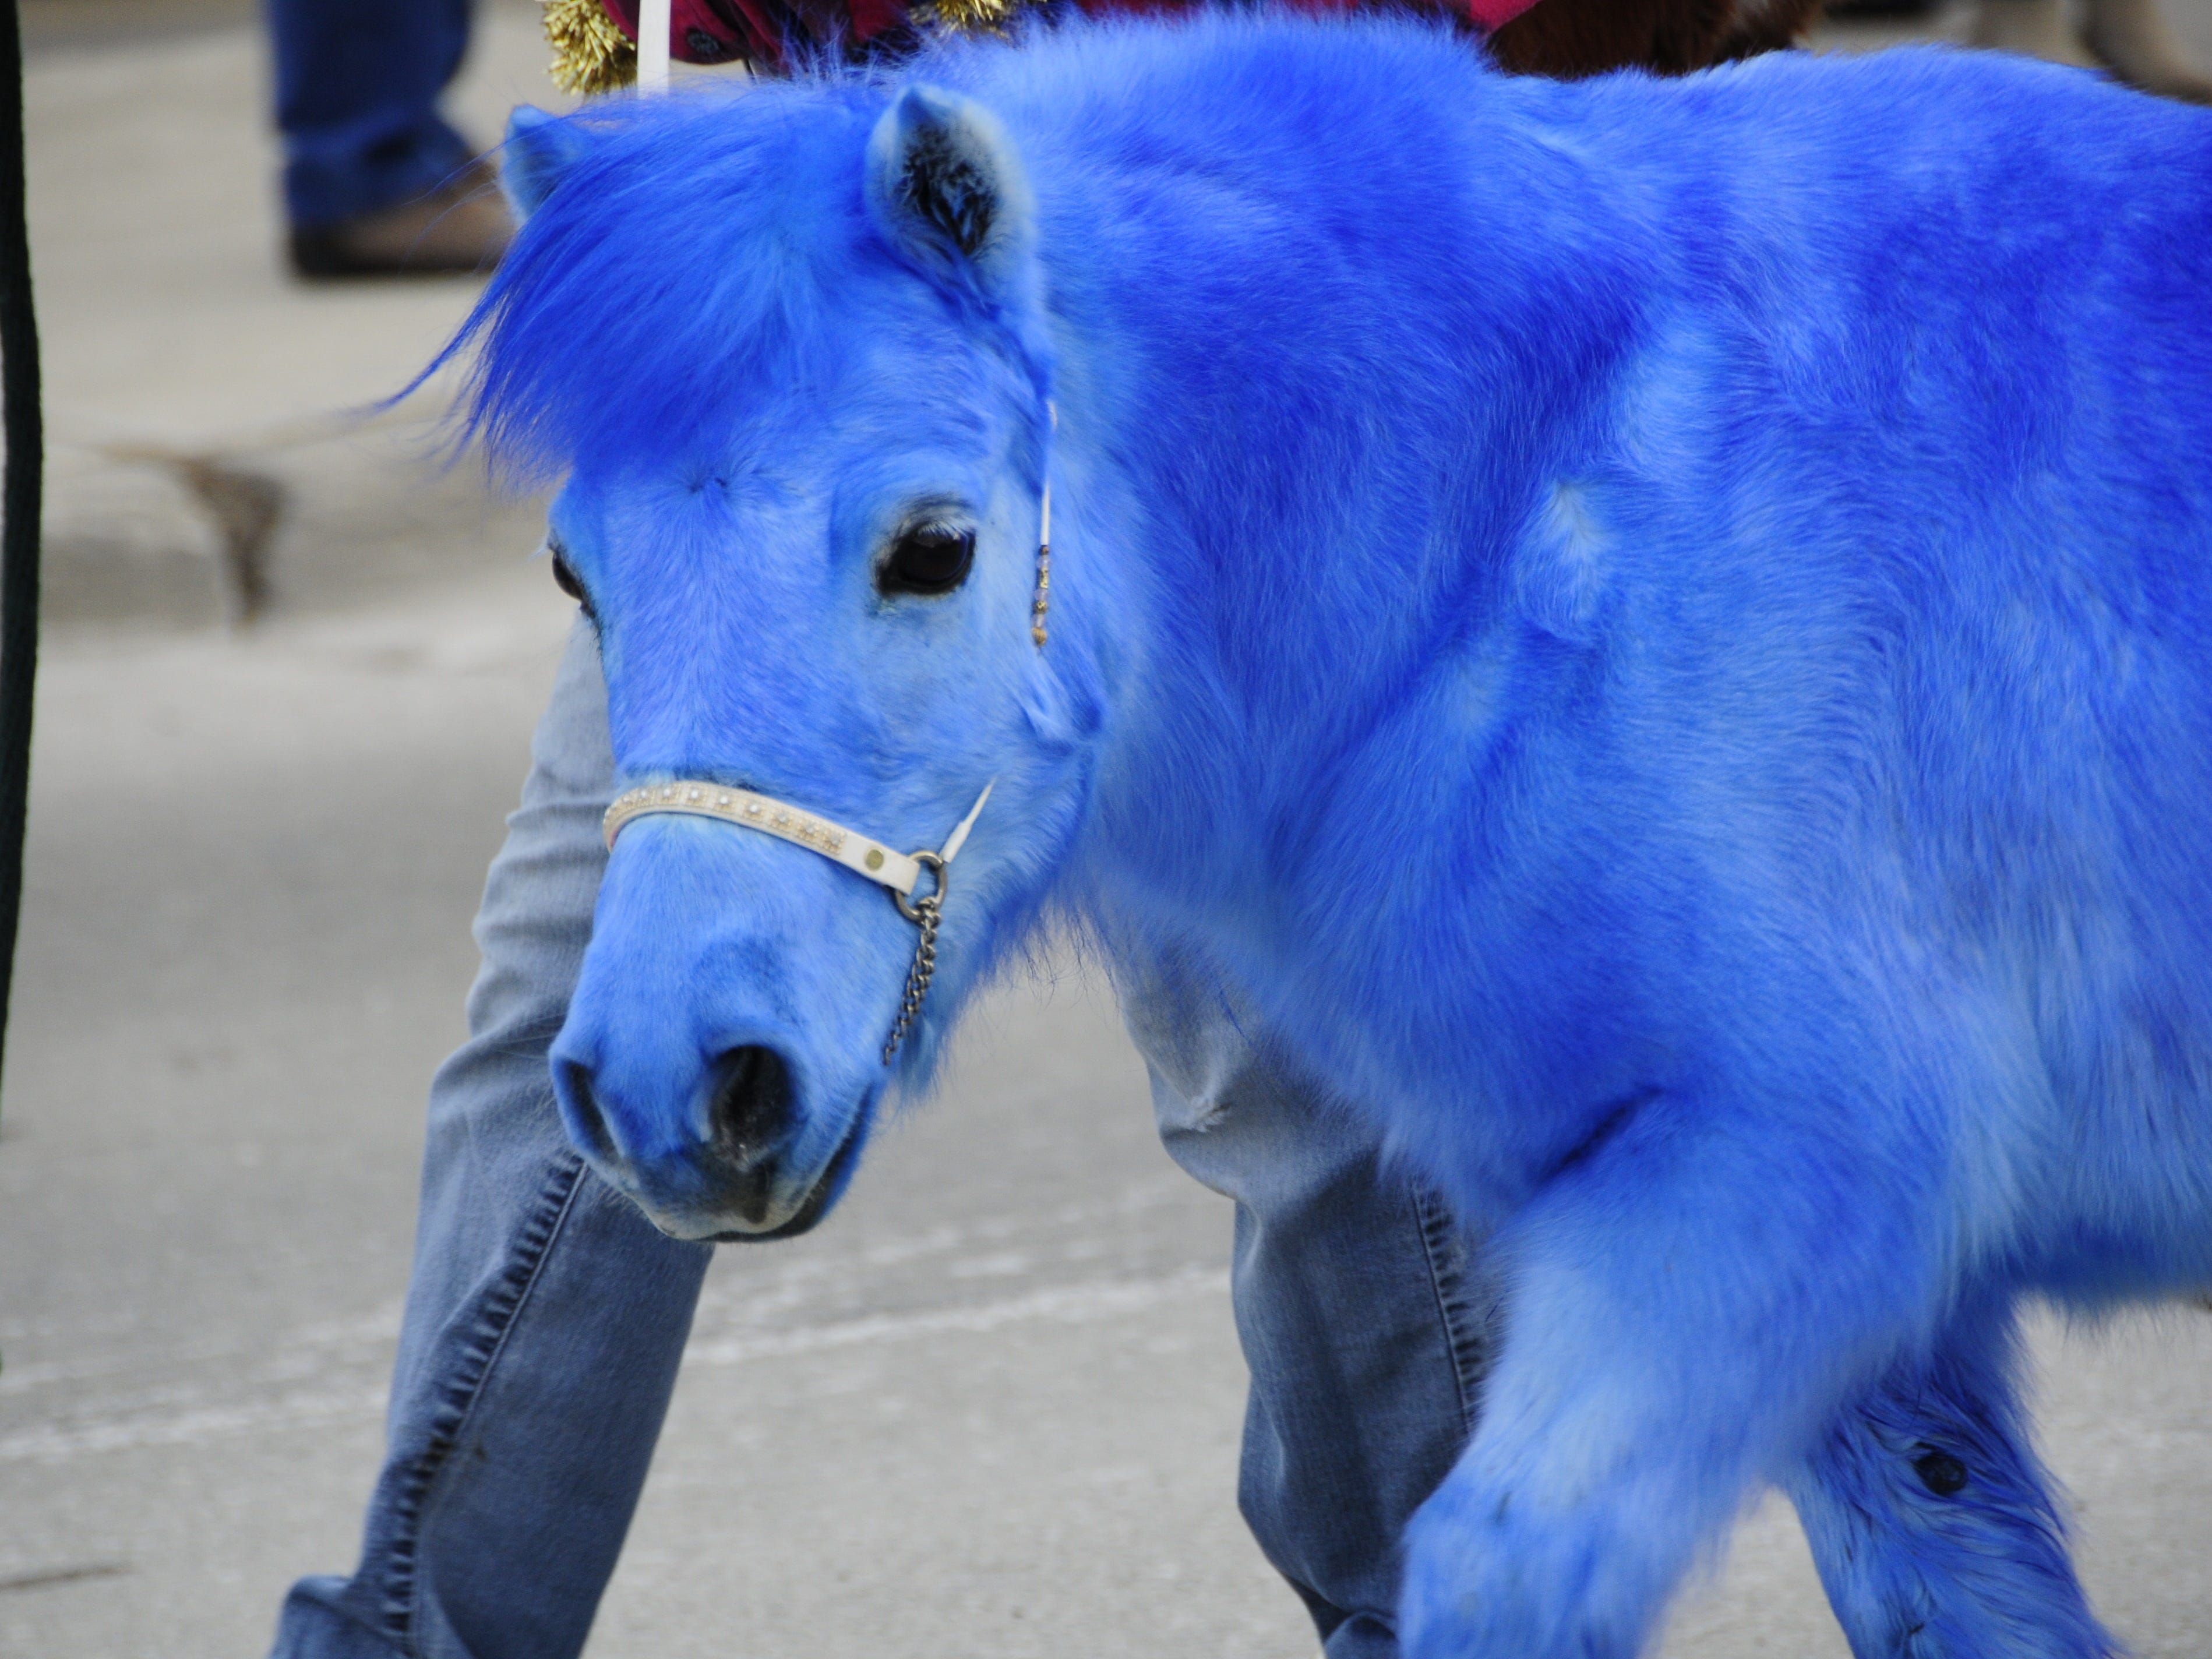 A miniature horse of a different color was at the Lexington Old-Fashioned Christmas Horse Parade on Saturday, Dec. 8, 2018.